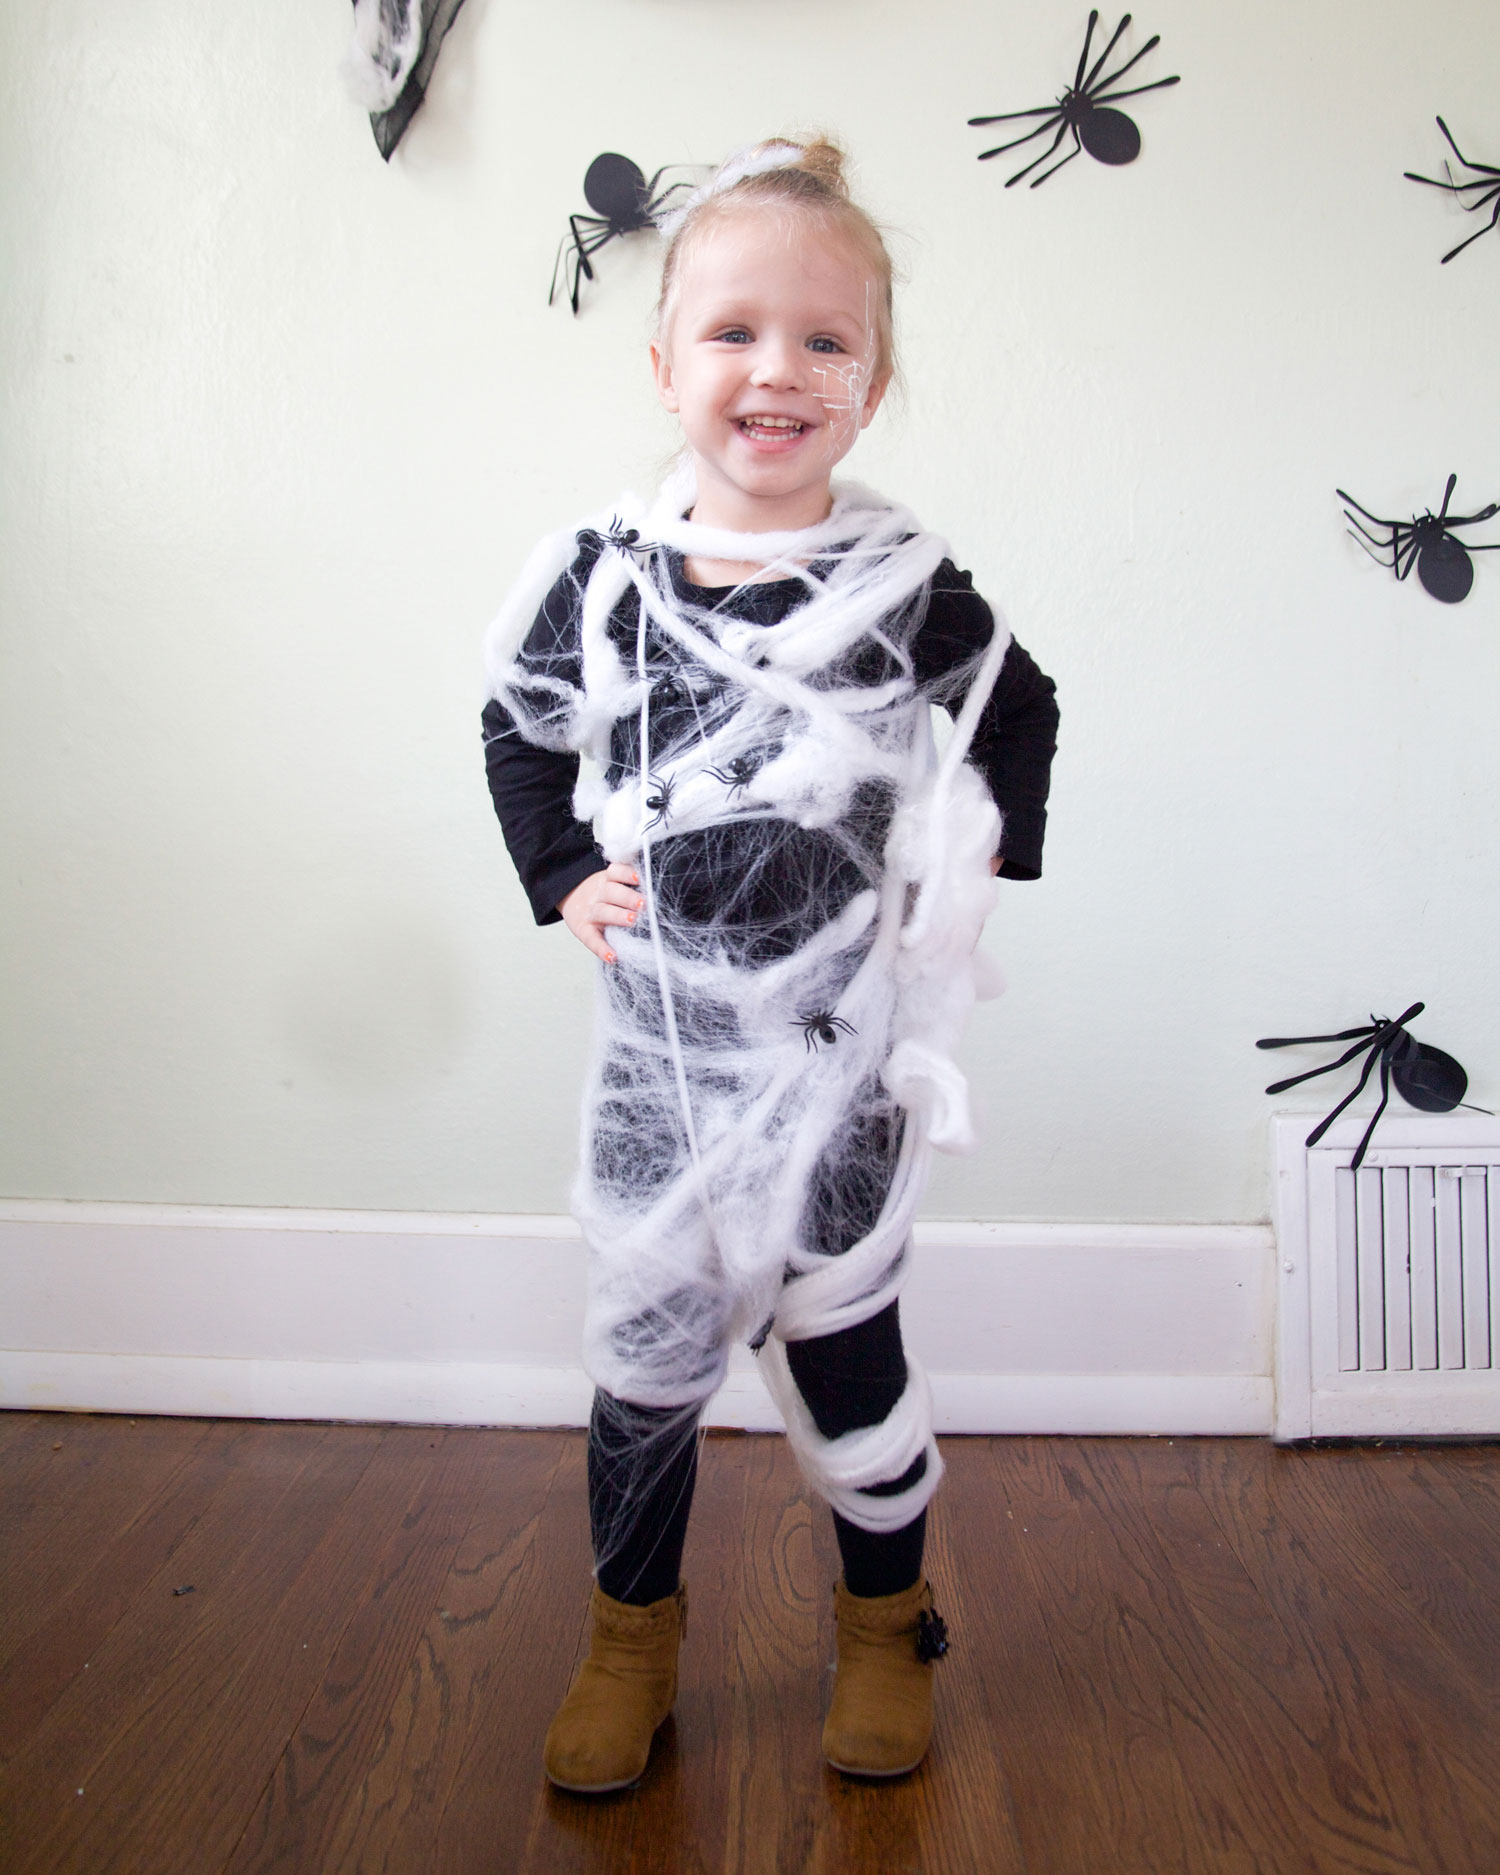 Try One of Our Last-Minute Halloween Costumes for Kids